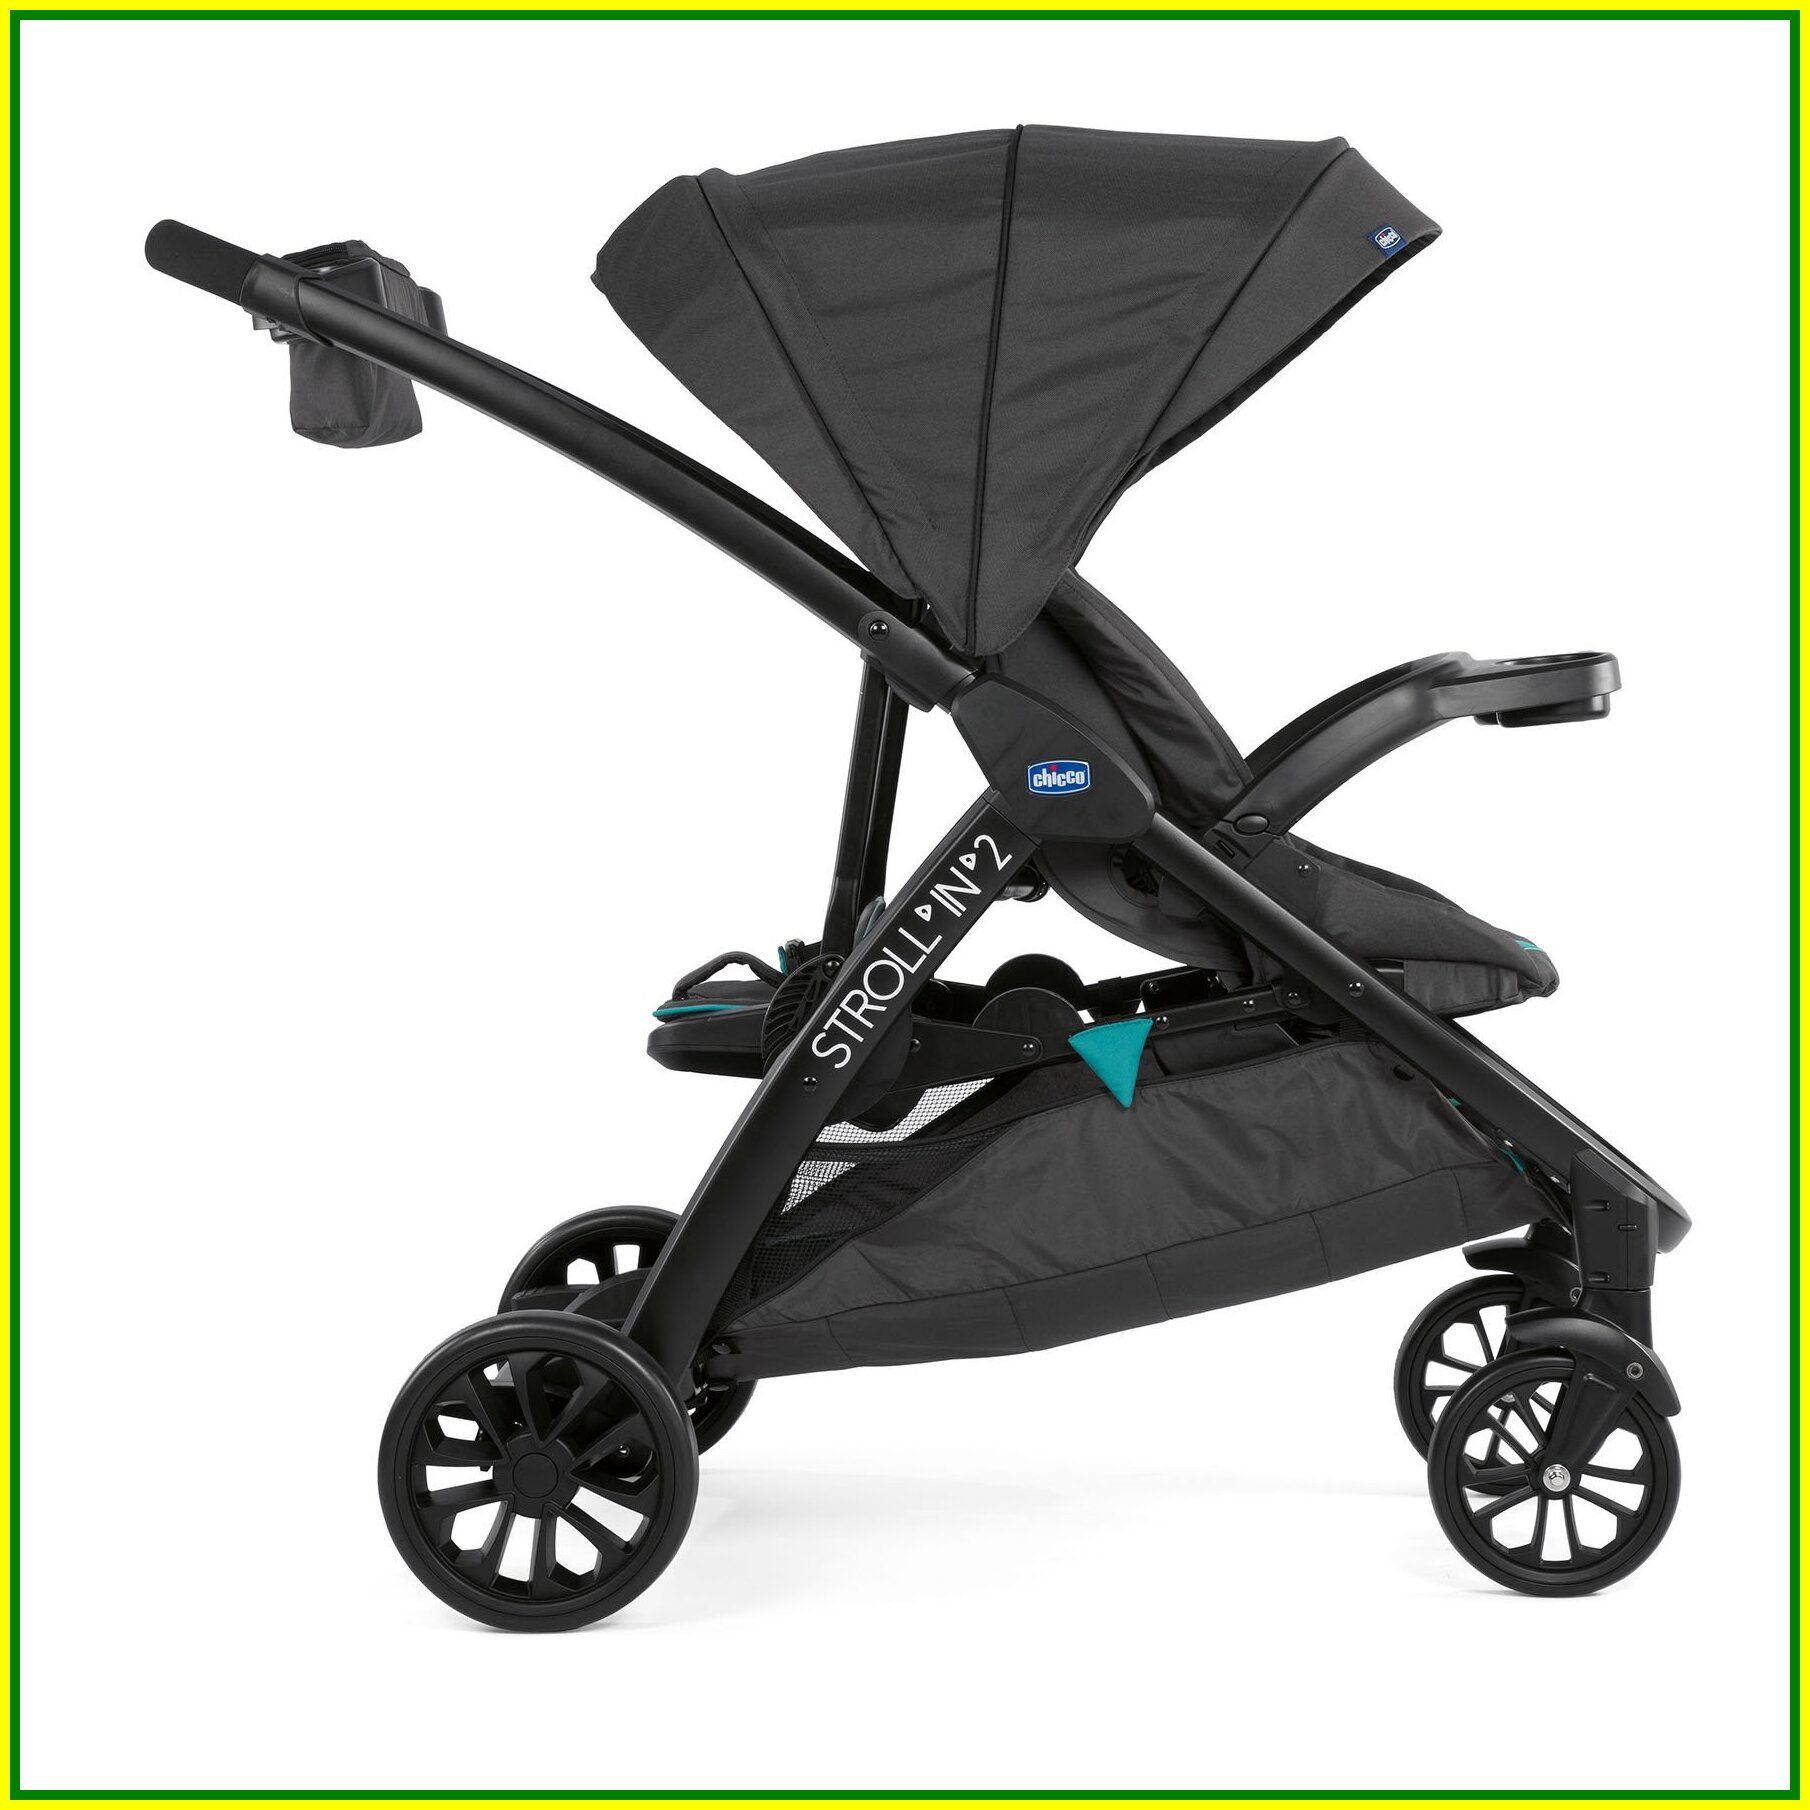 93 reference of stroller Chicco double stroller in 2020